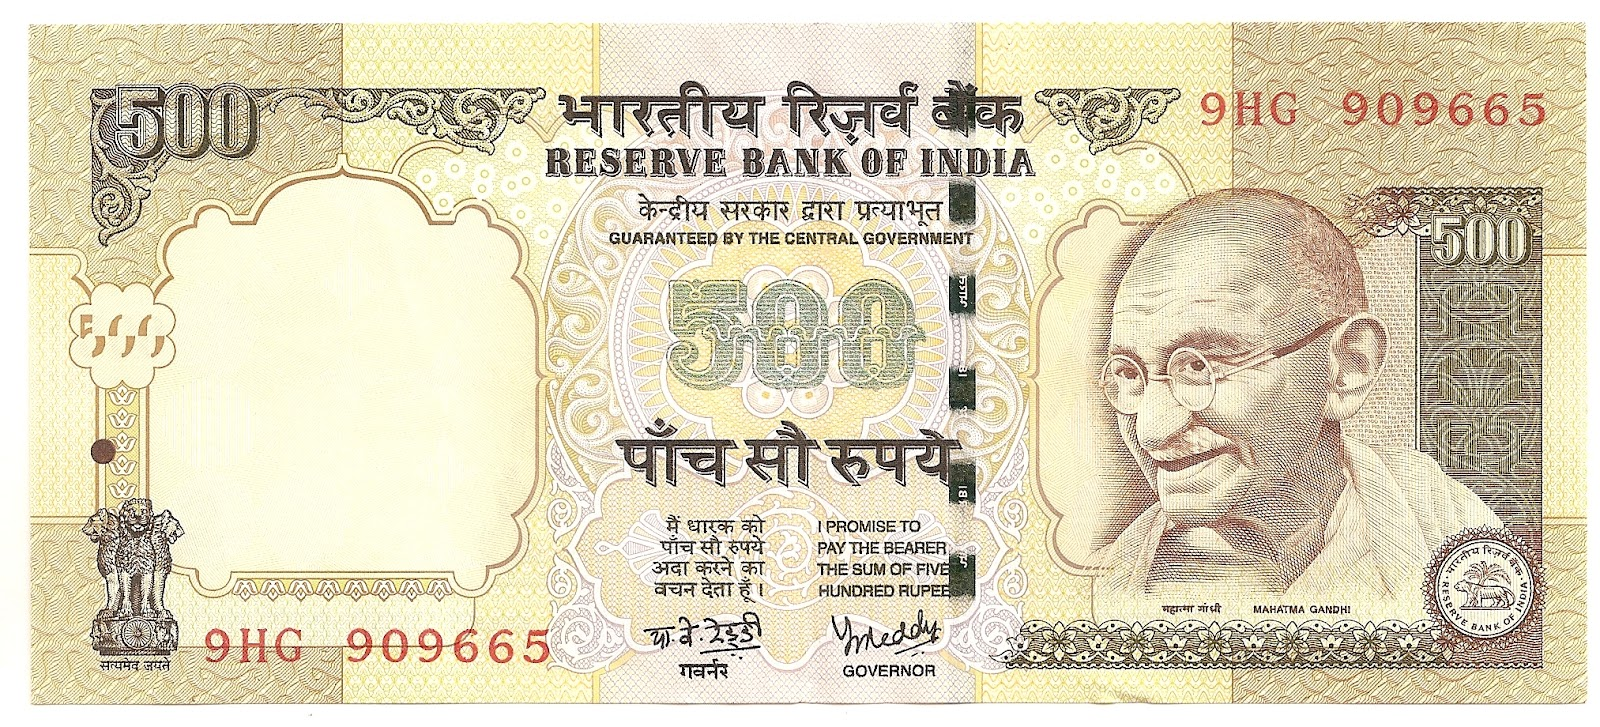 Rupee Note Change The Above is a 500 Rupee Note